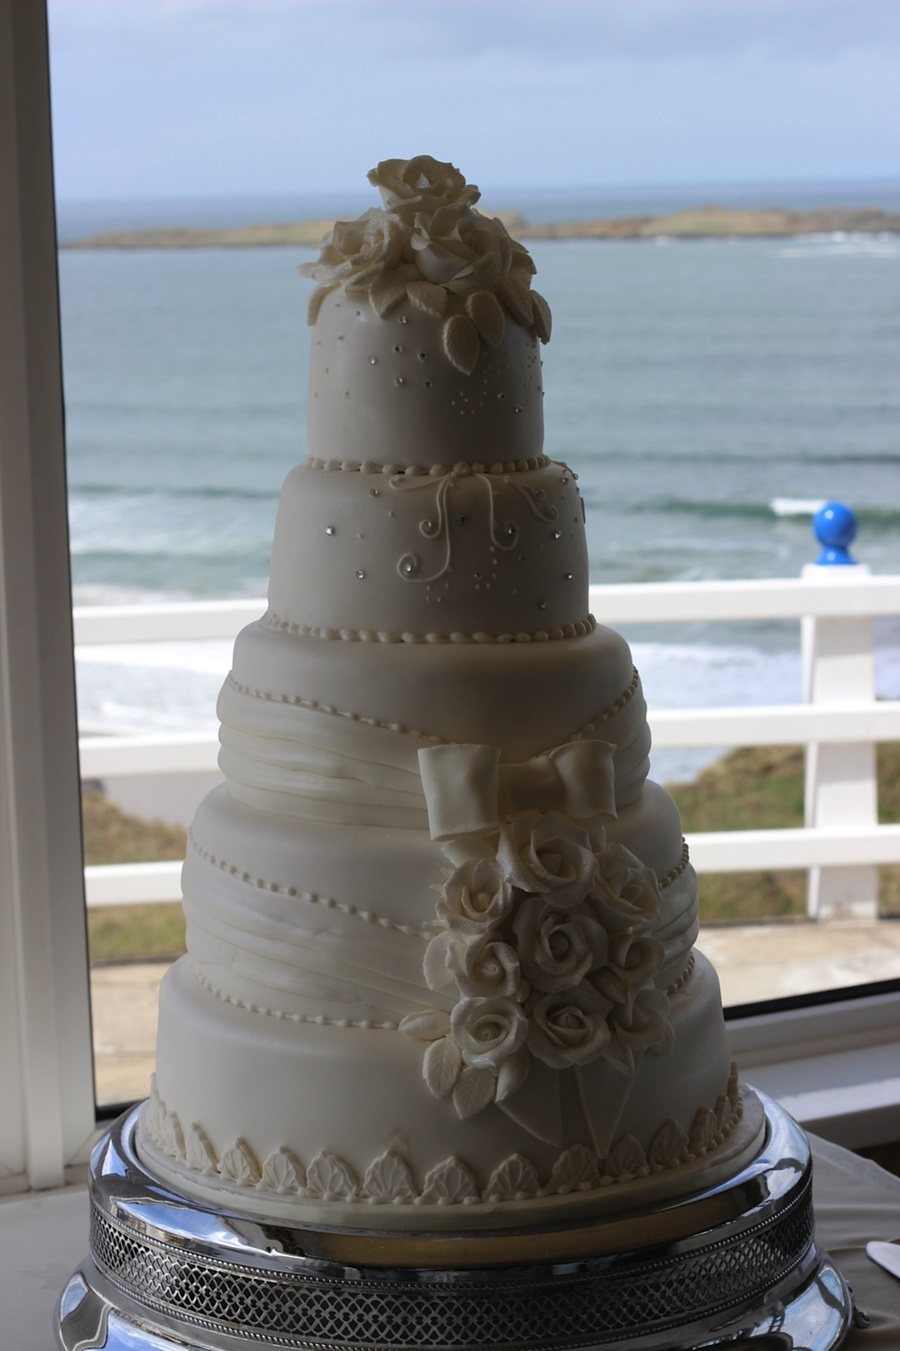 Cake By Patricia Mann Cake Designs Set Up At The Royal Court Hotel Portrush With The Beautiful East Strand In The Background on Cake Central